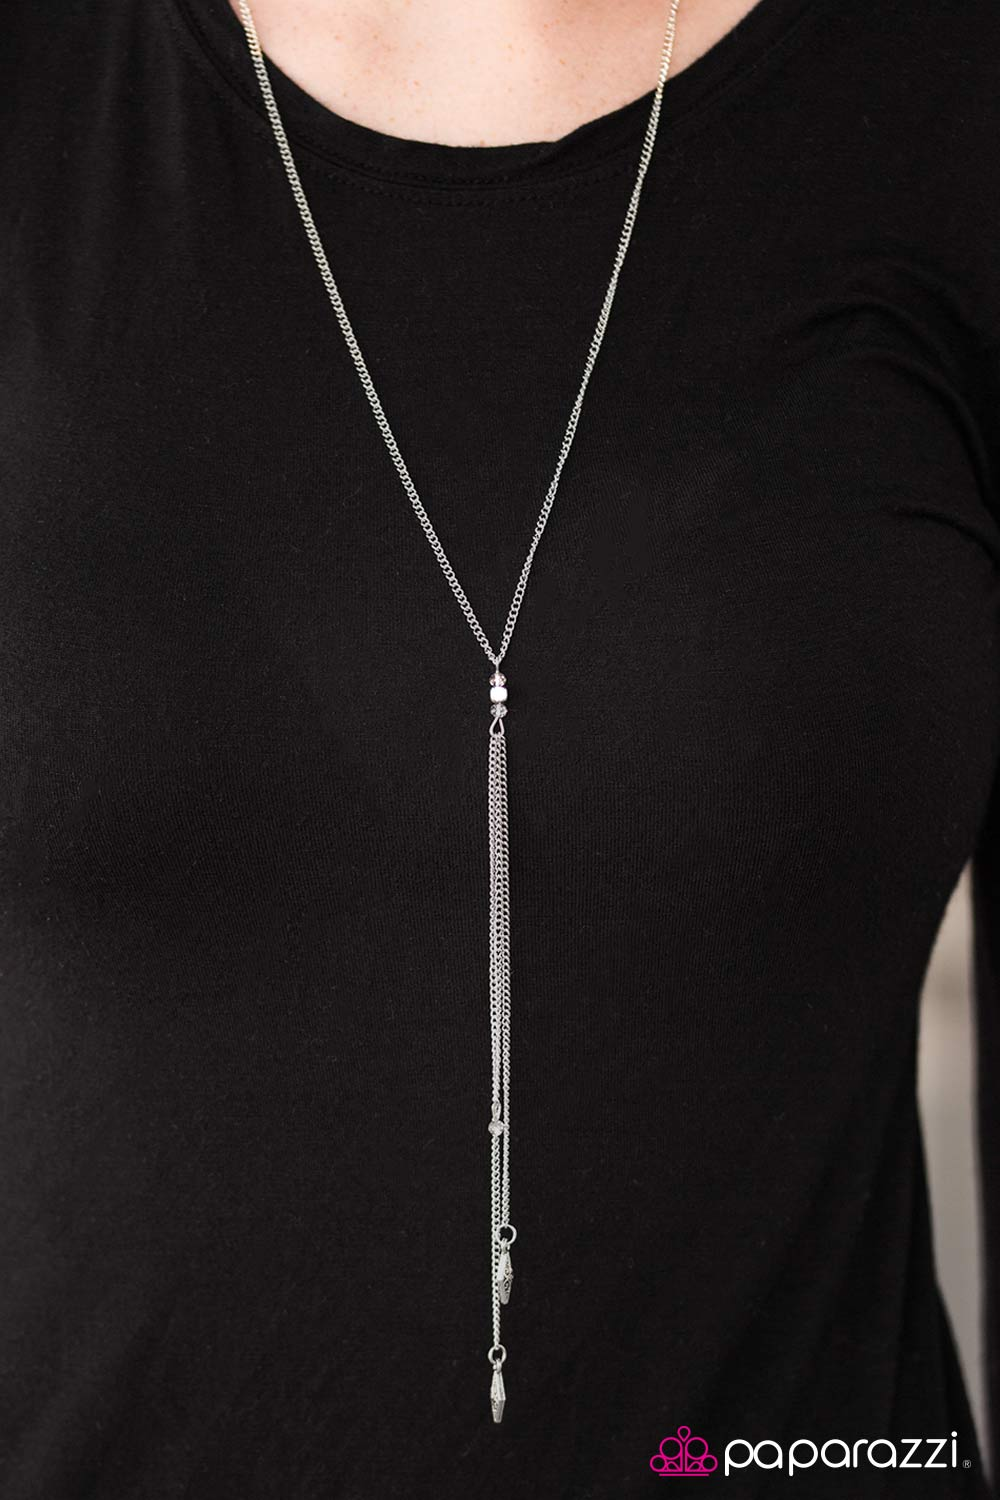 Perfect Cadence - Paparazzi necklace